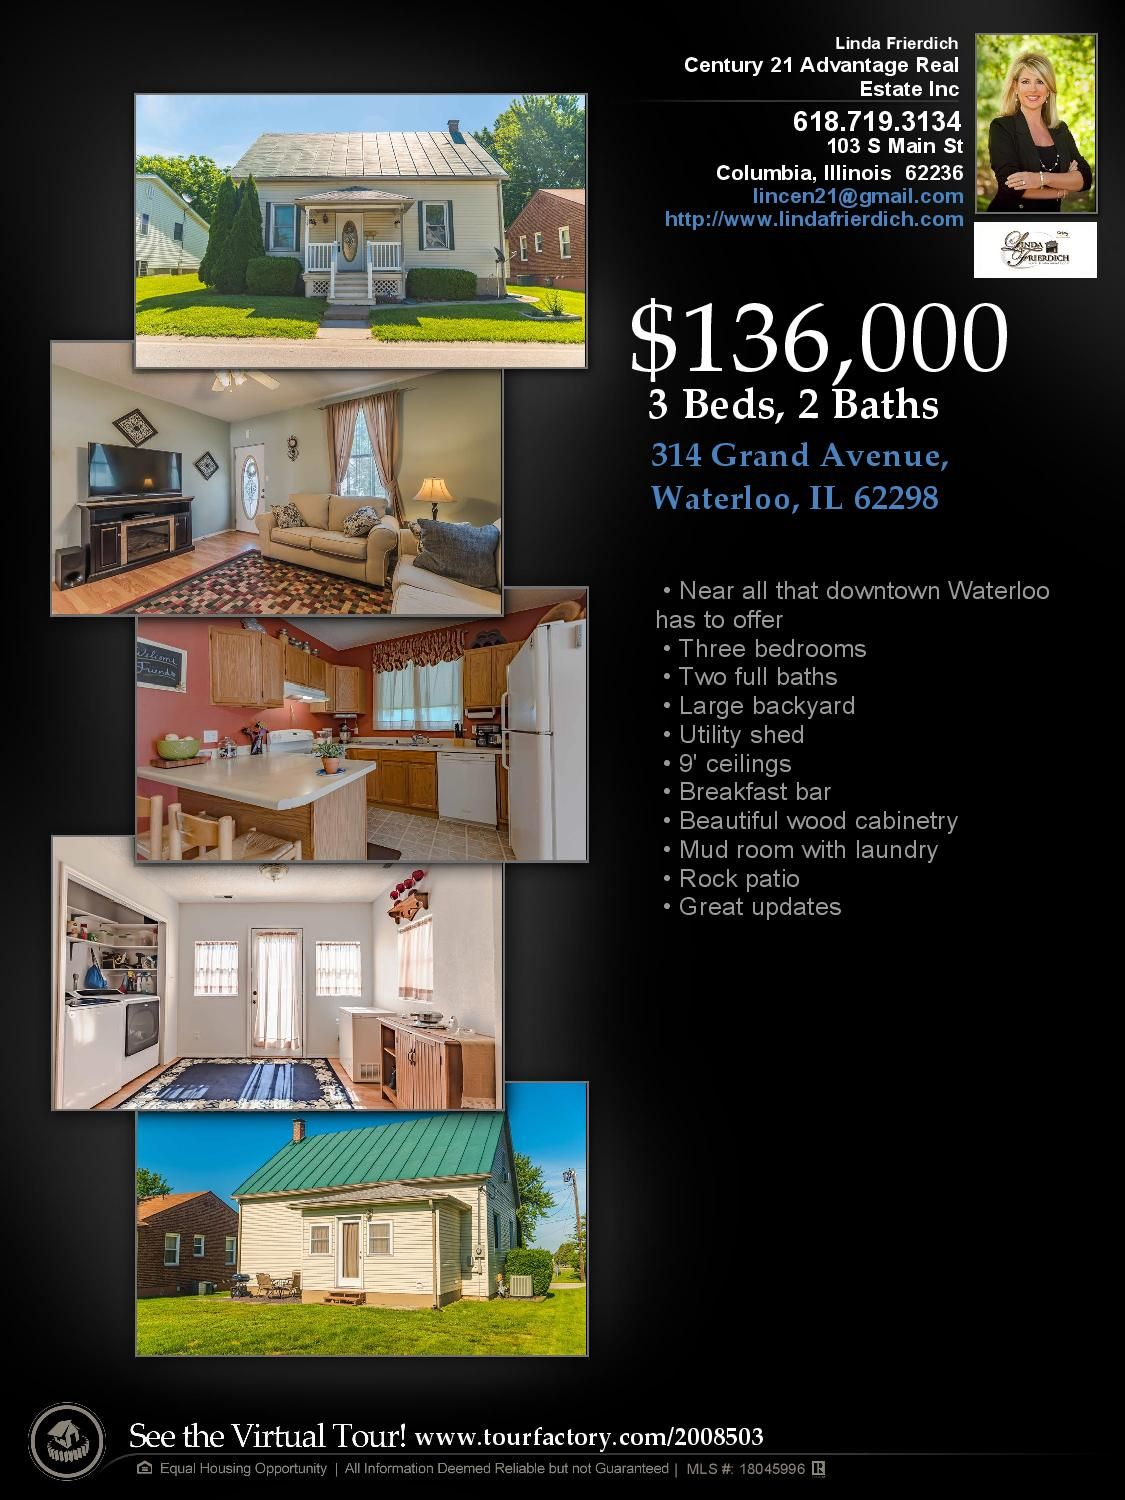 Great Waterloo home for sale! Tons of charm and updates